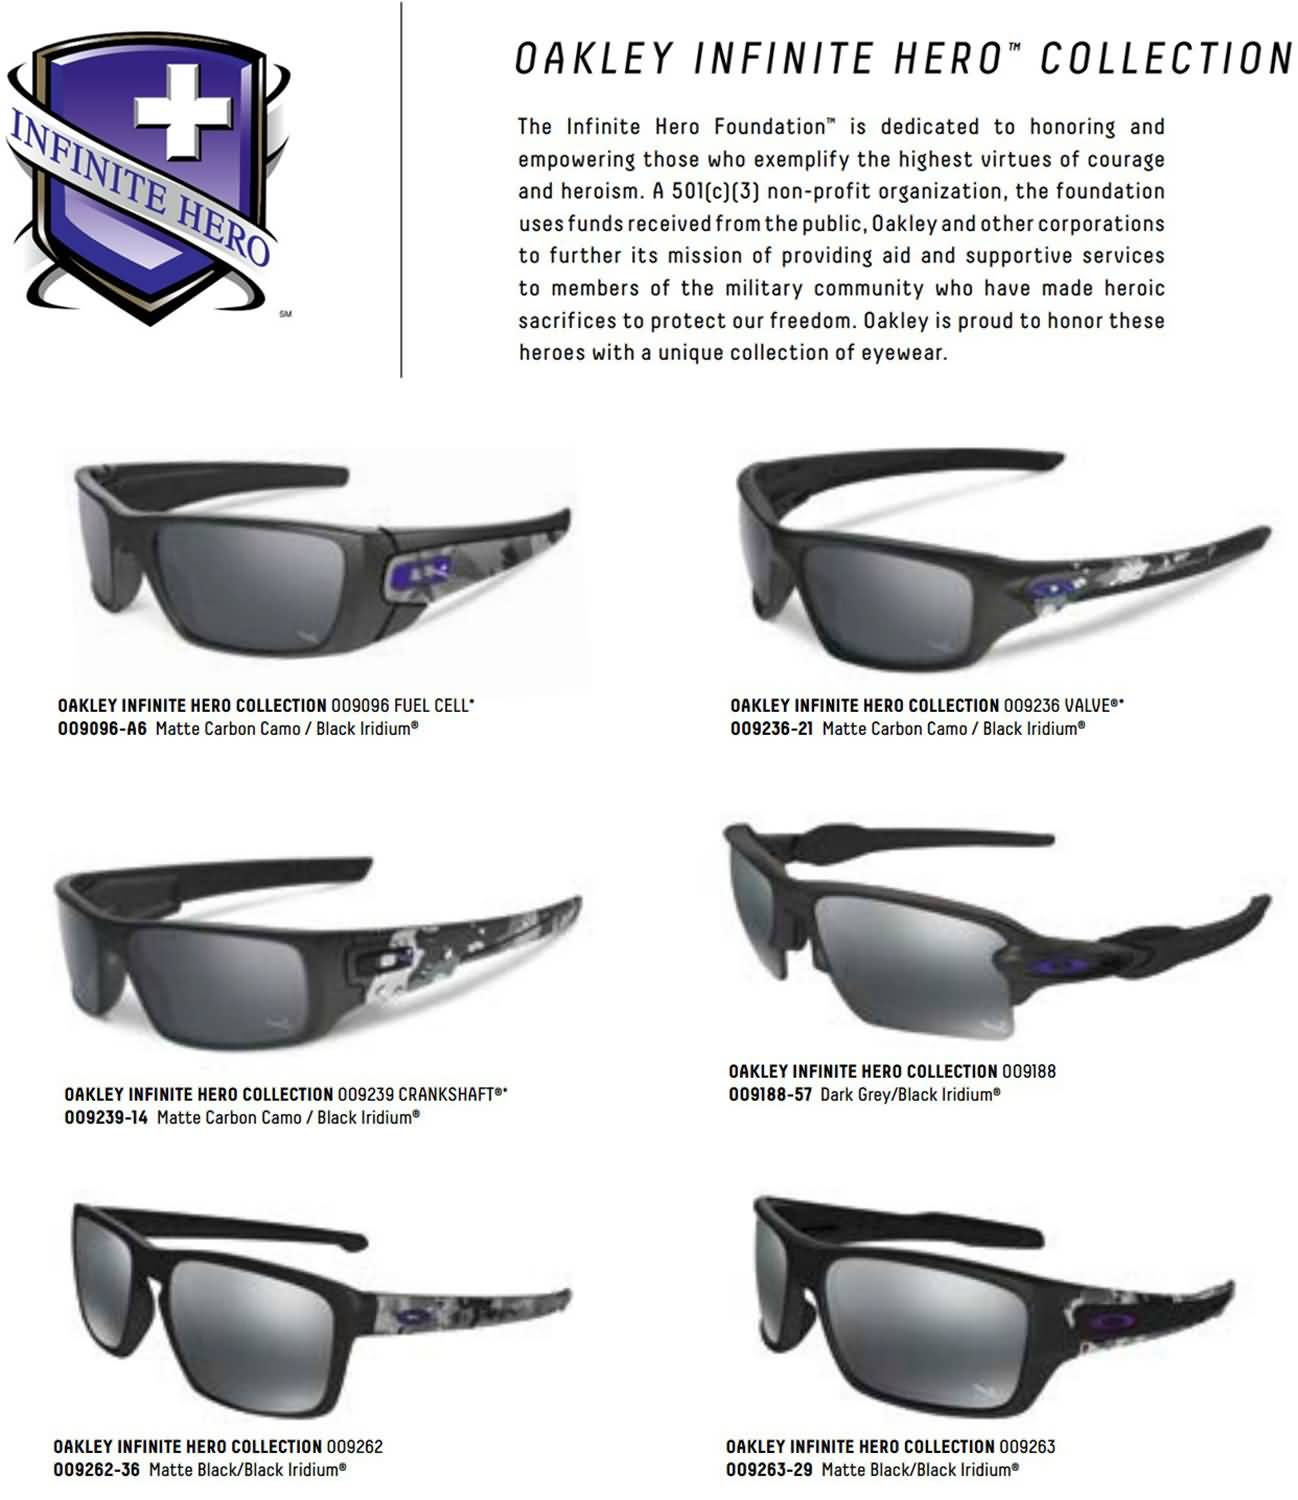 fde74d05c6 Sunglasses Oakley Fuel Cell Infinite Hero Edition « Heritage Malta